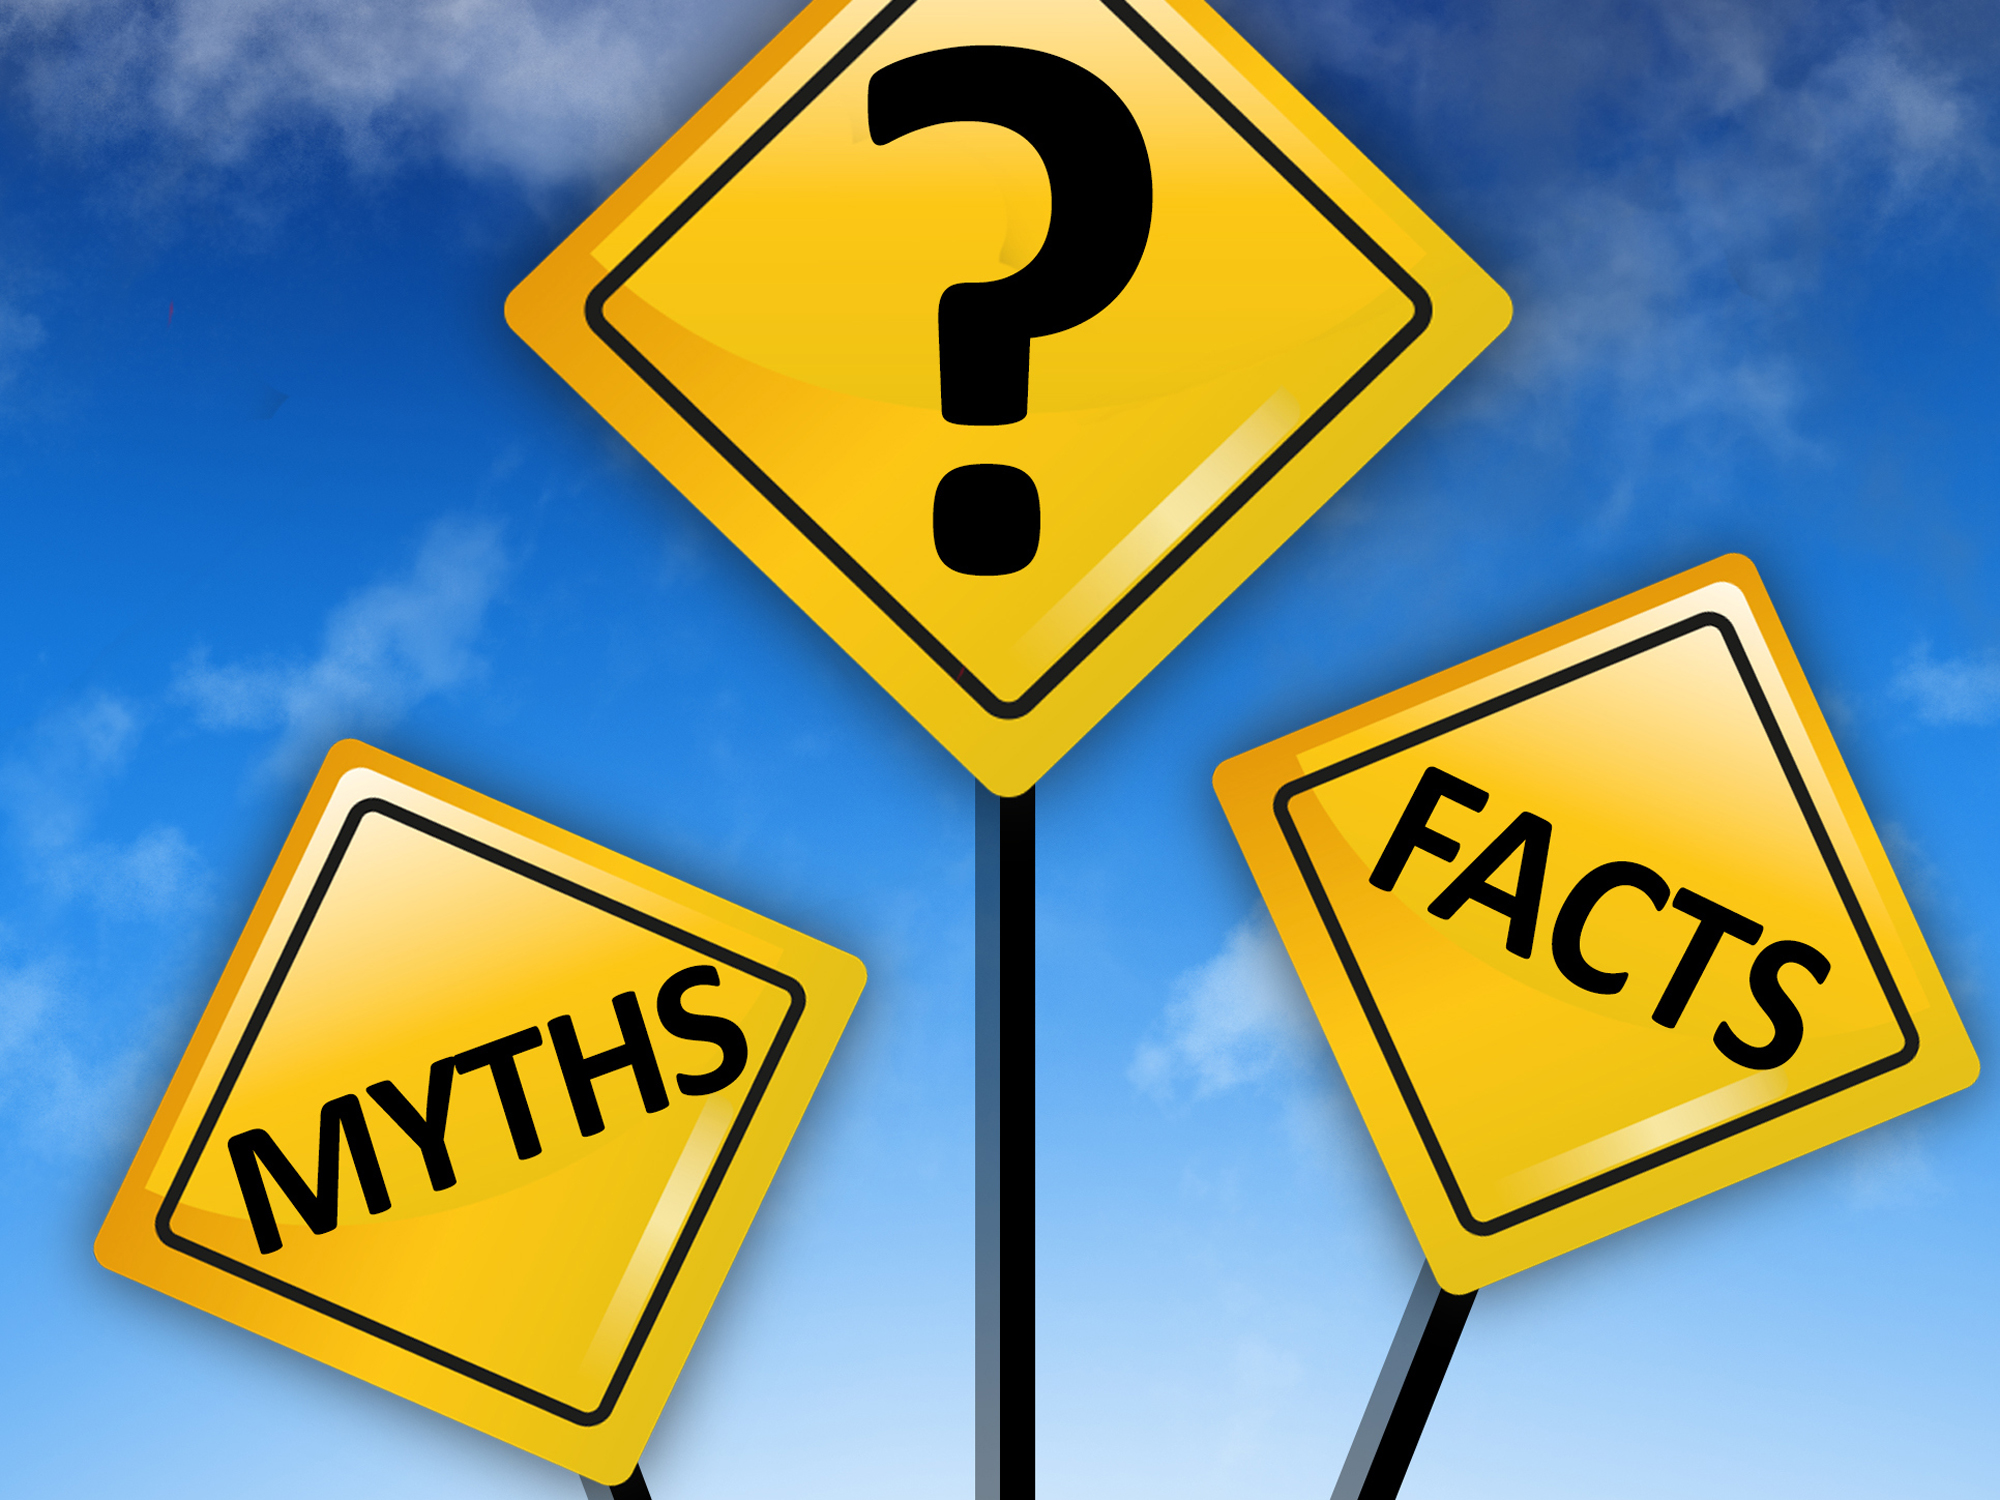 6 Aging myths to start ignoring right now